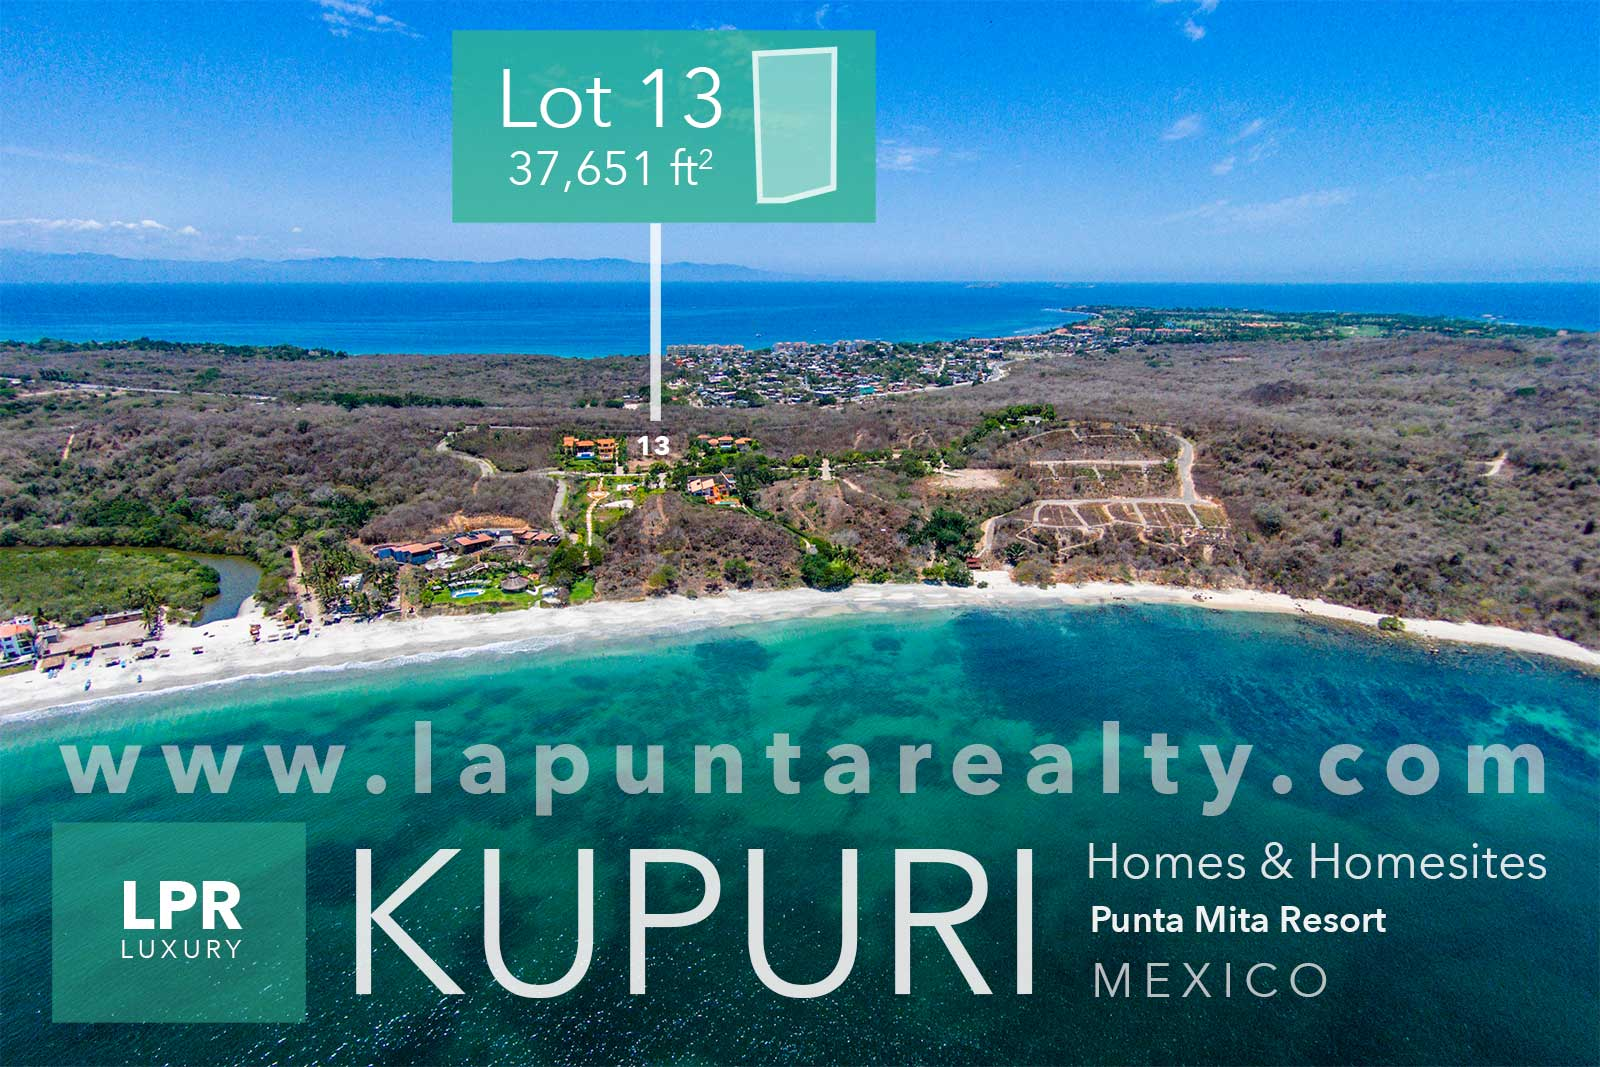 Kupuri Estate lot 13 - Punta Mita Mexico